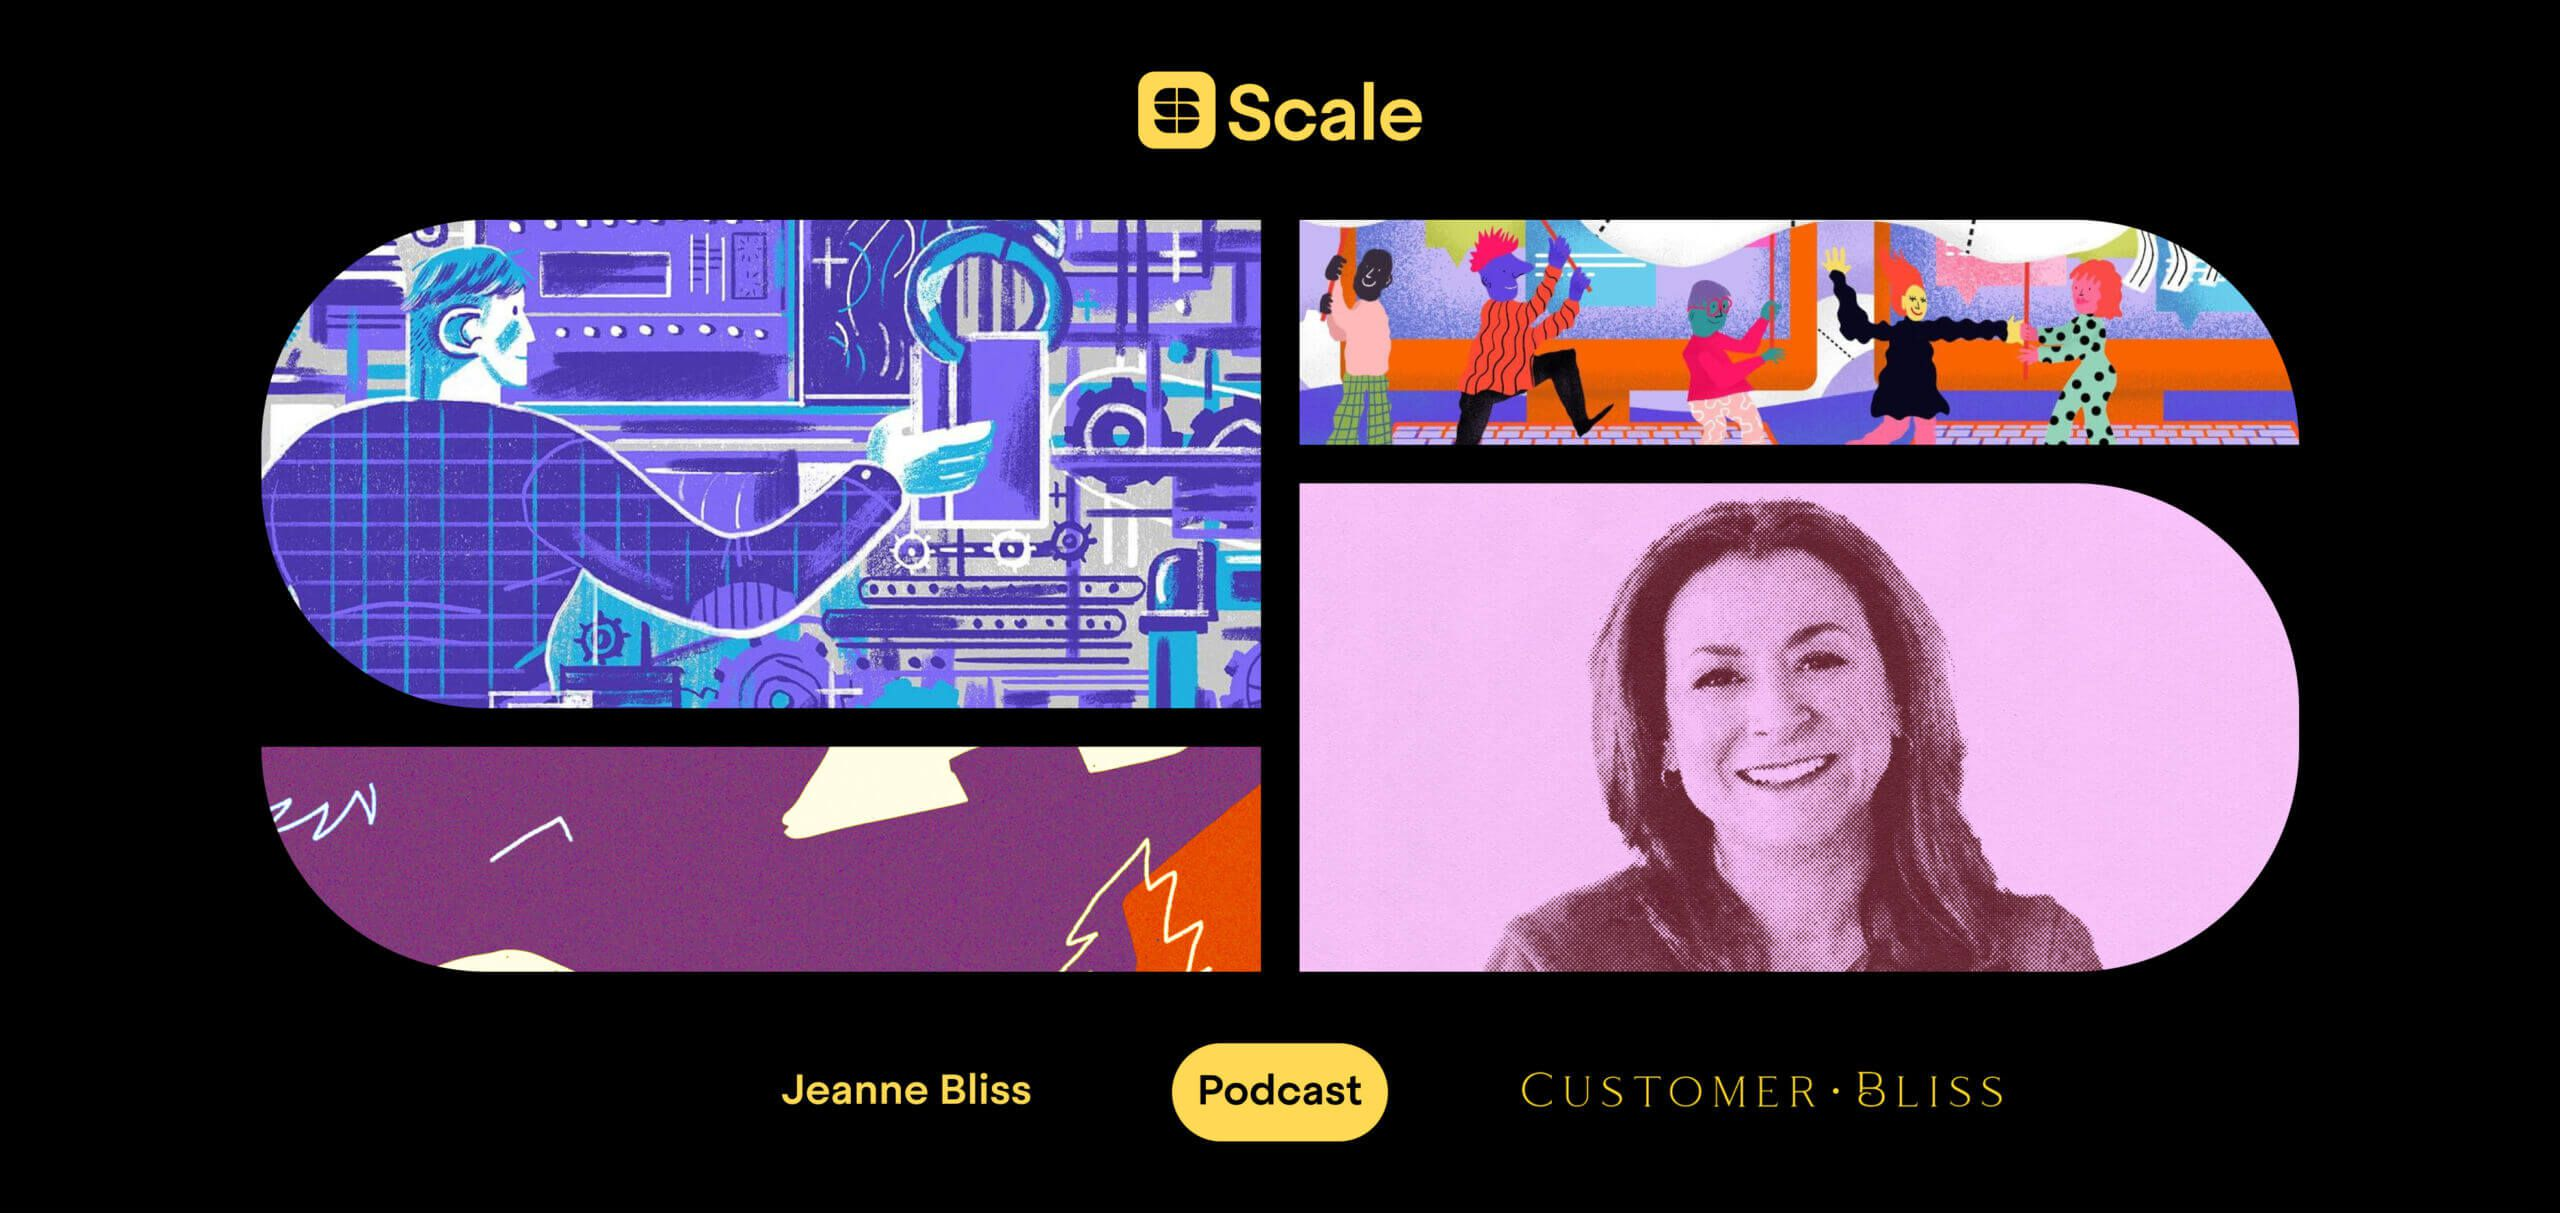 CX pioneer Jeanne Bliss on building customer-centric businesses